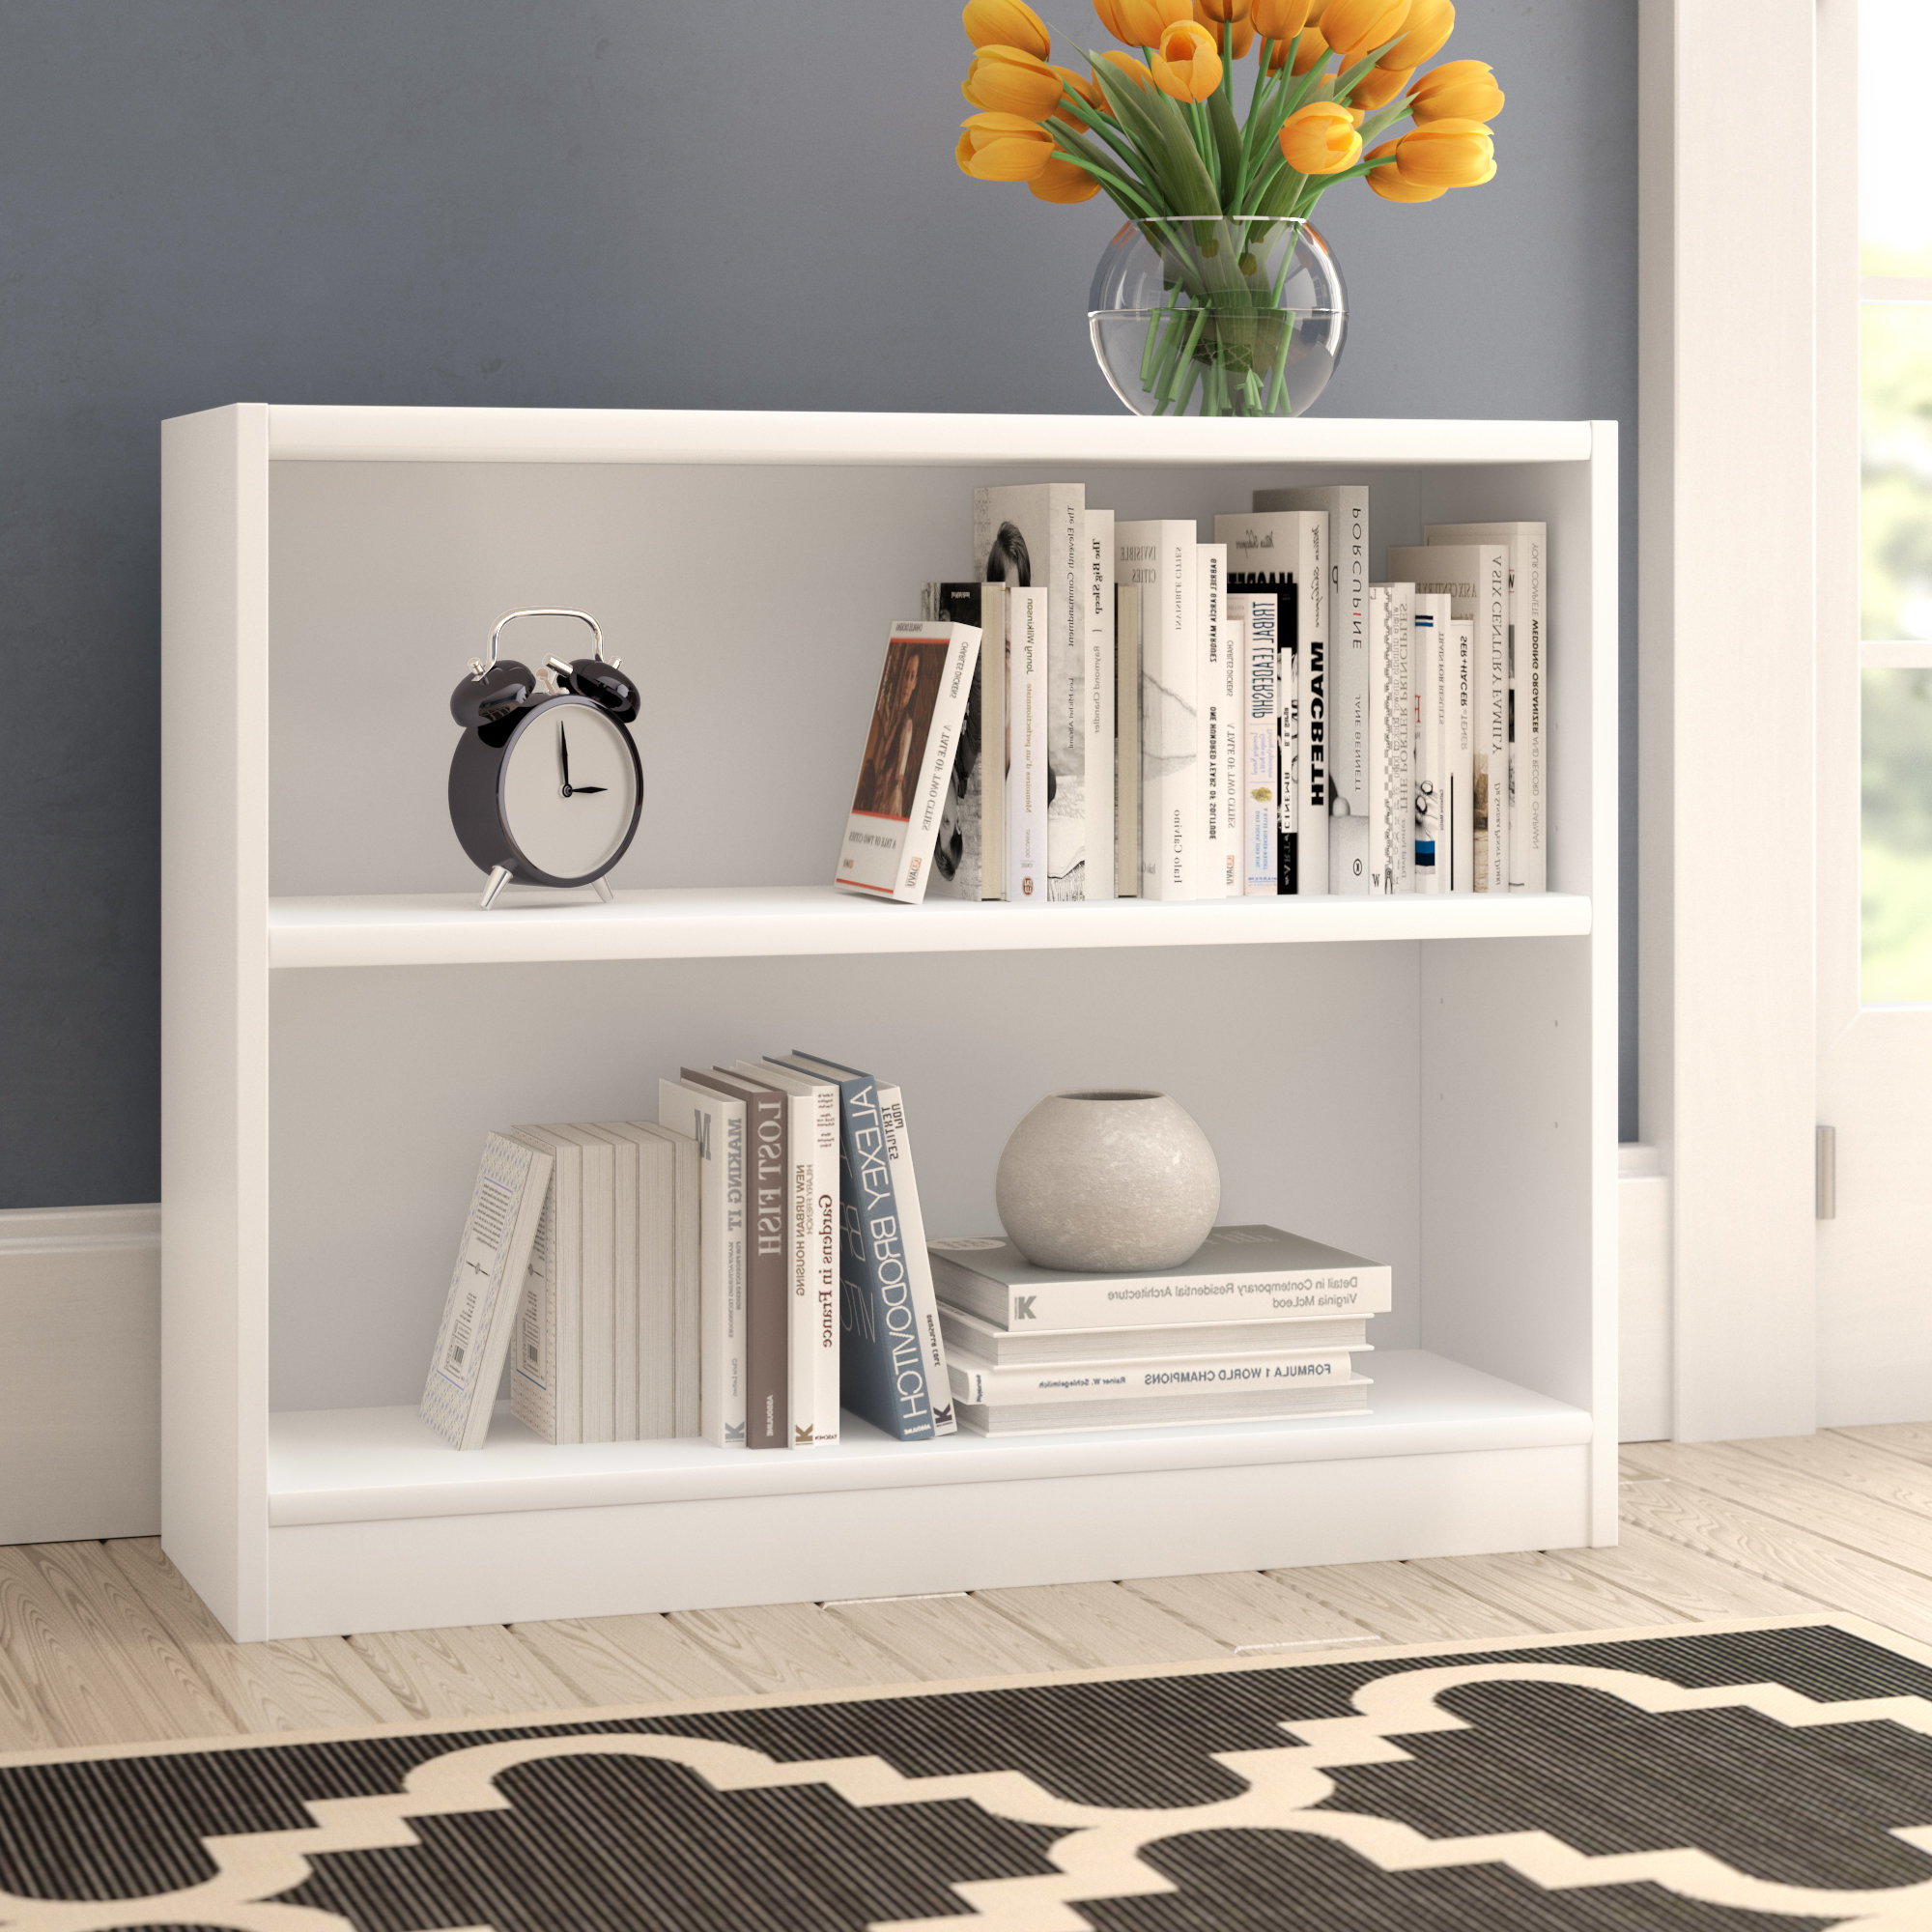 Kronqui Standard Bookcases With Regard To Current Kirkbride Standard Bookcase (View 7 of 20)